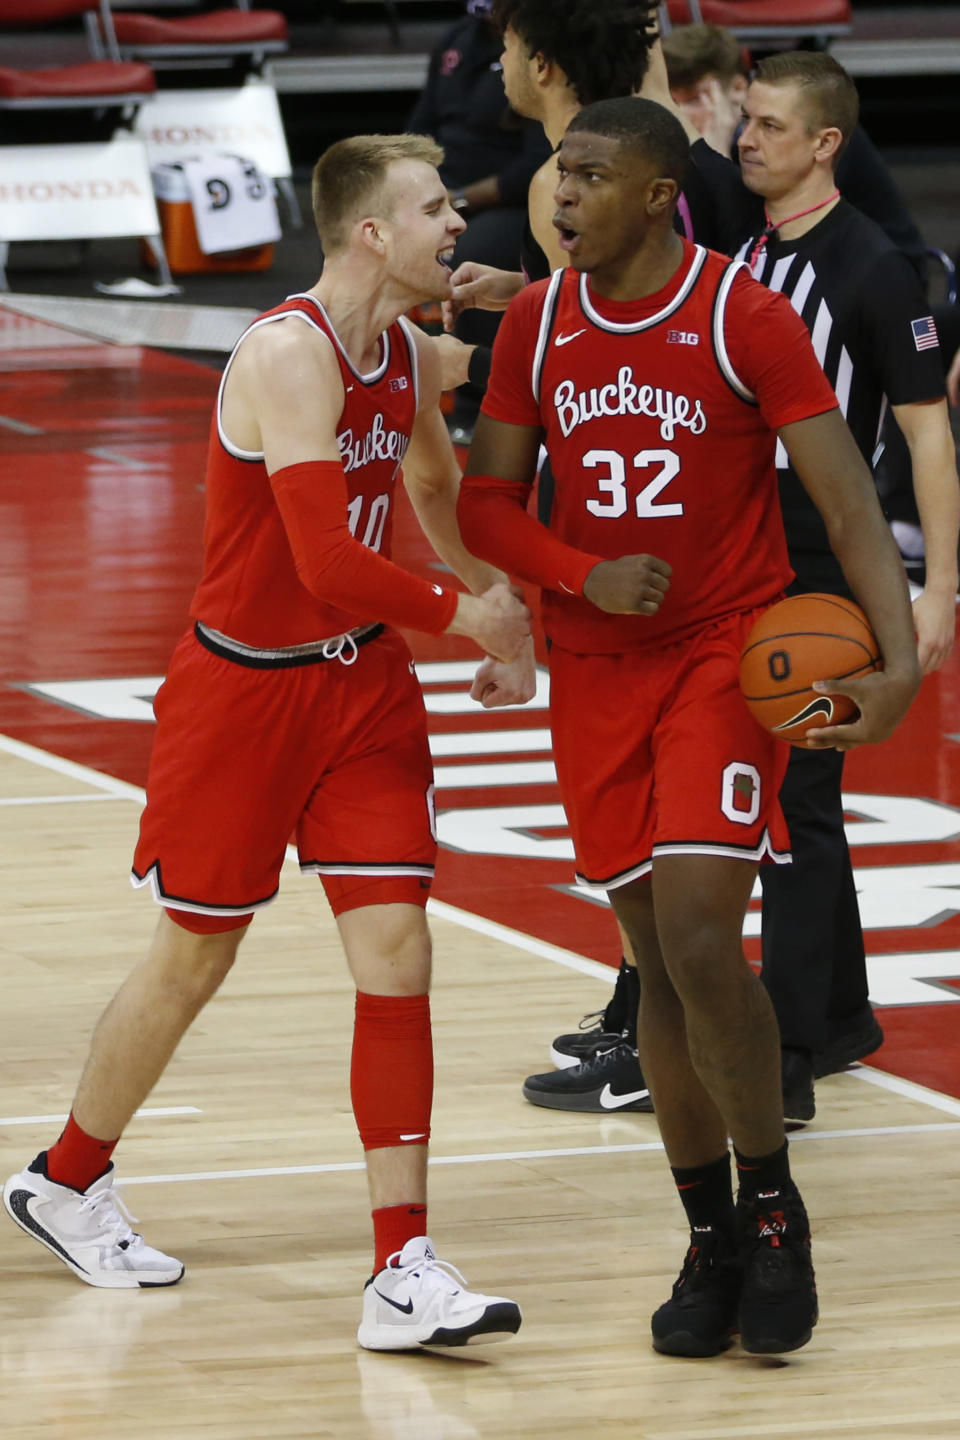 Ohio State's E.J. Liddell, right, celebrates grabbing with teammate Justin Ahrens during the second half of an NCAA college basketball game Wednesday, Jan. 27, 2021, in Columbus, Ohio. Ohio State beat Penn State 83-79. (AP Photo/Jay LaPrete)